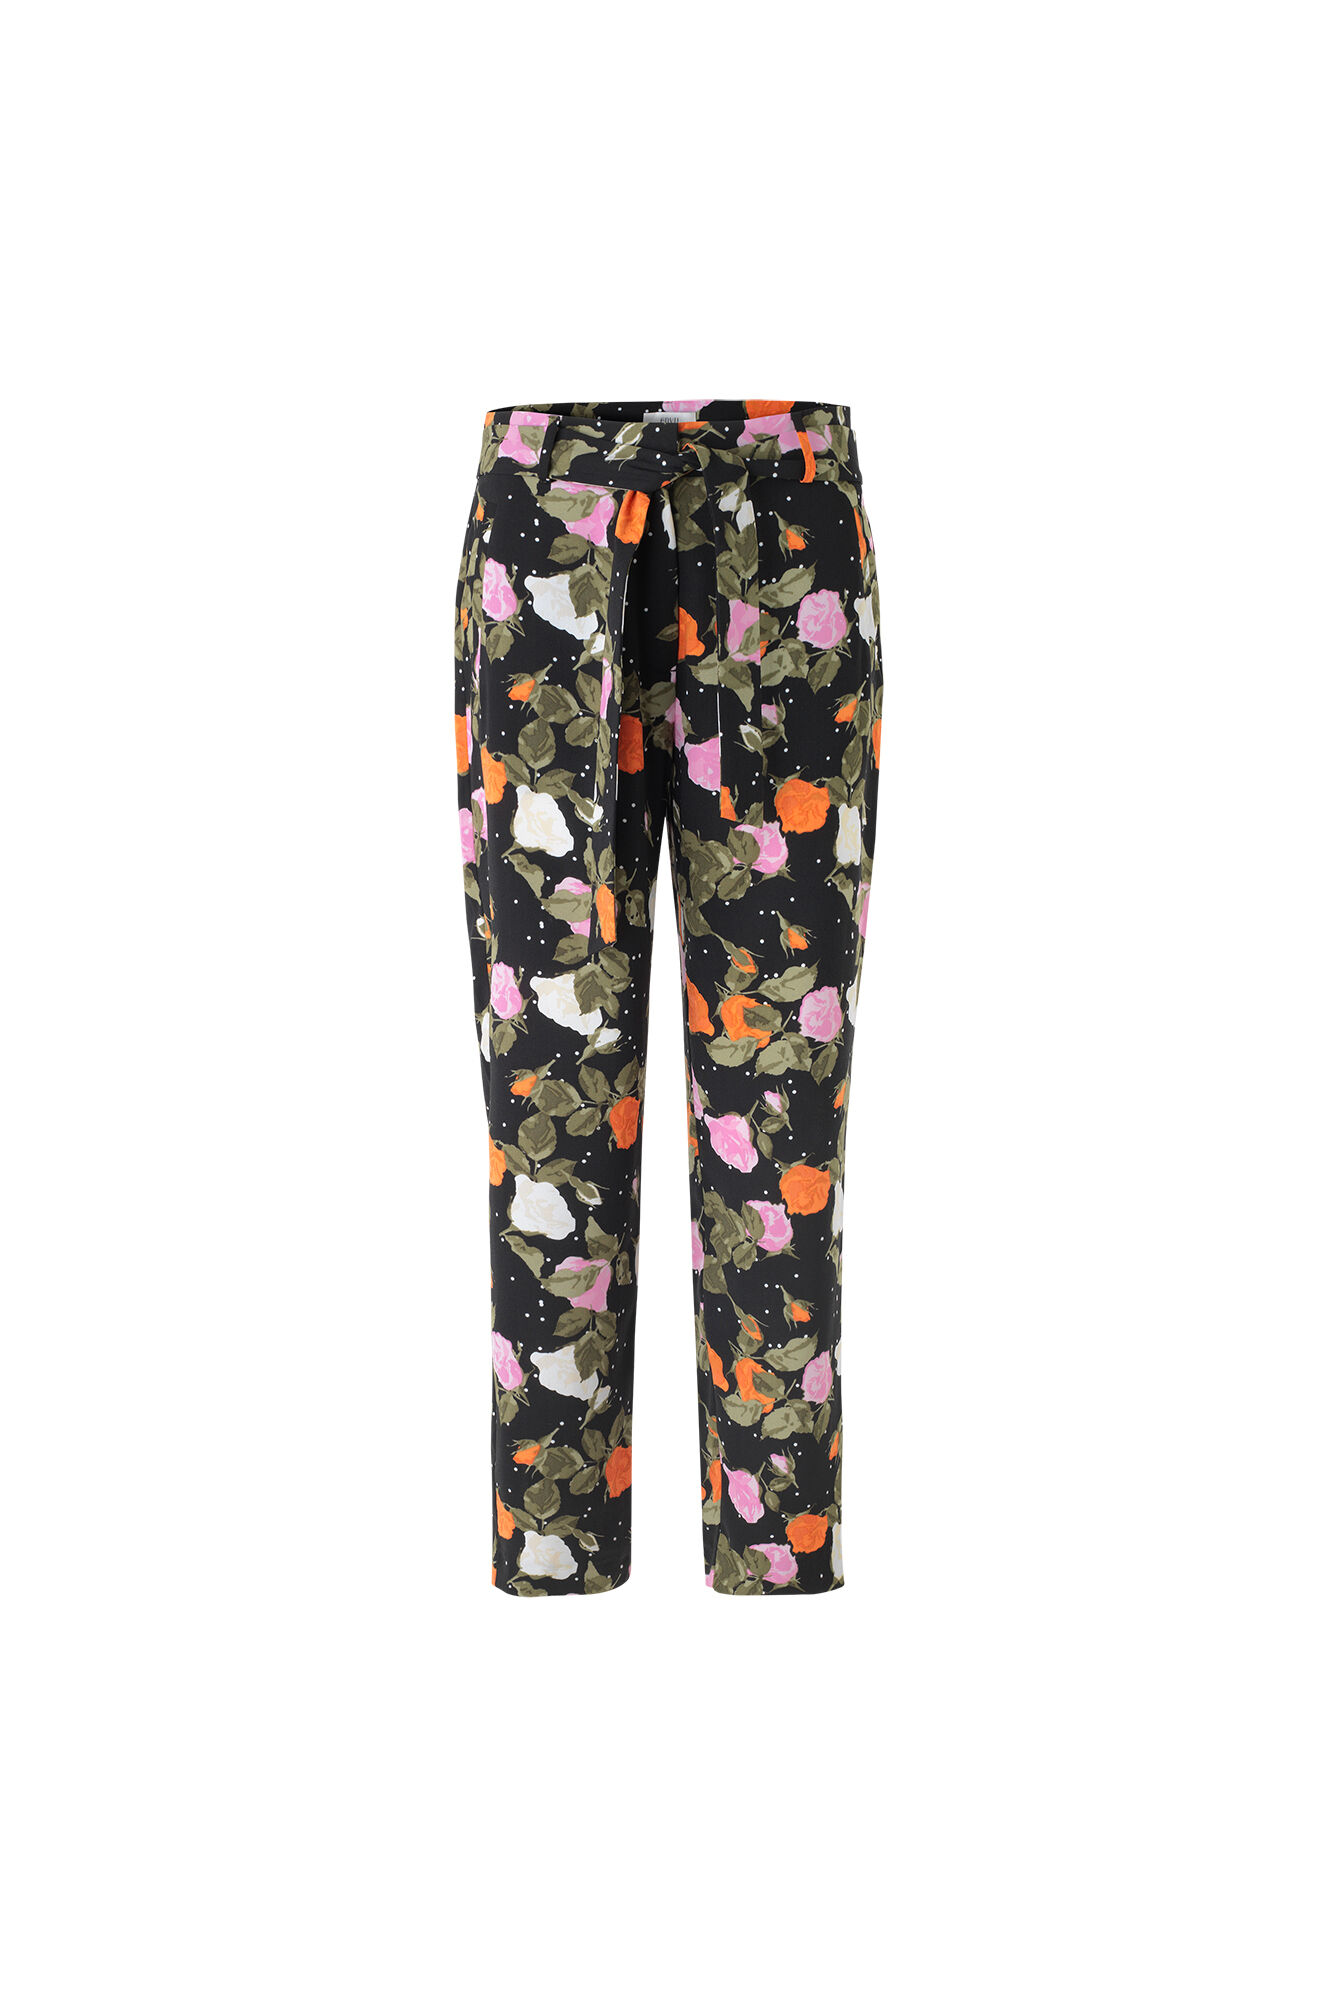 ENAPOLLO PANTS AOP 6497, ROSE DOT AOP